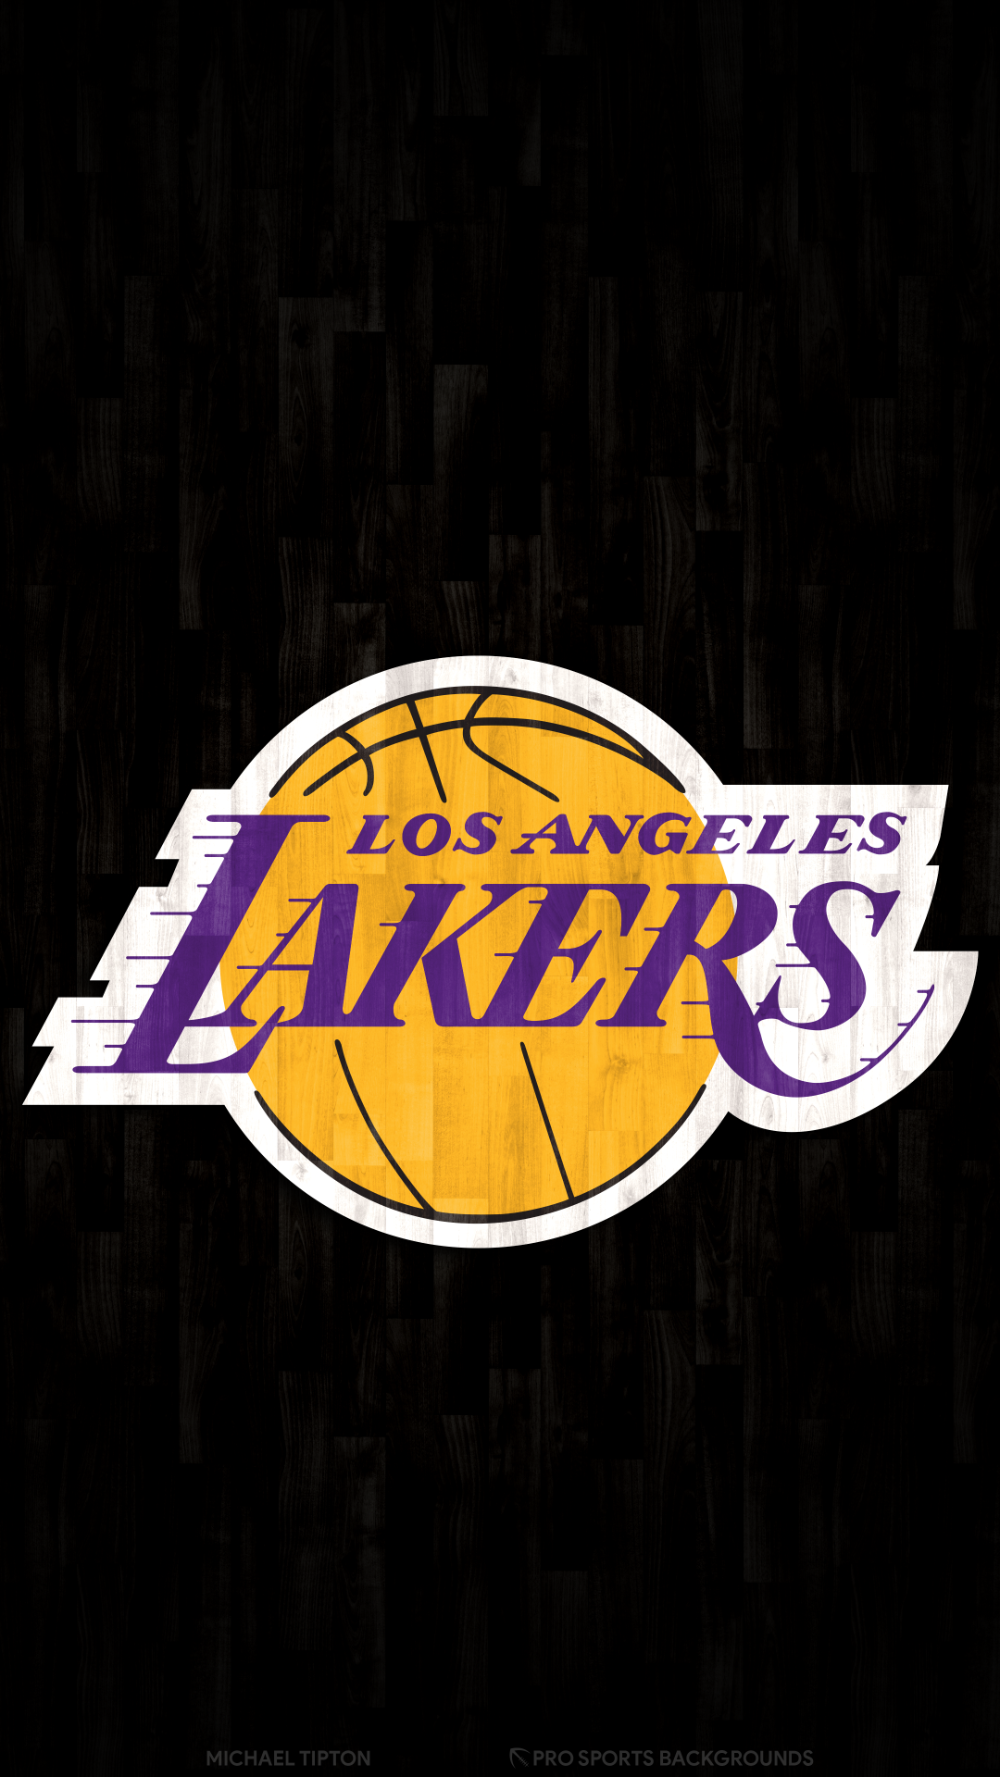 los angeles lakers wallpapers pro sports backgrounds lakers wallpaper los angeles lakers lakers logo